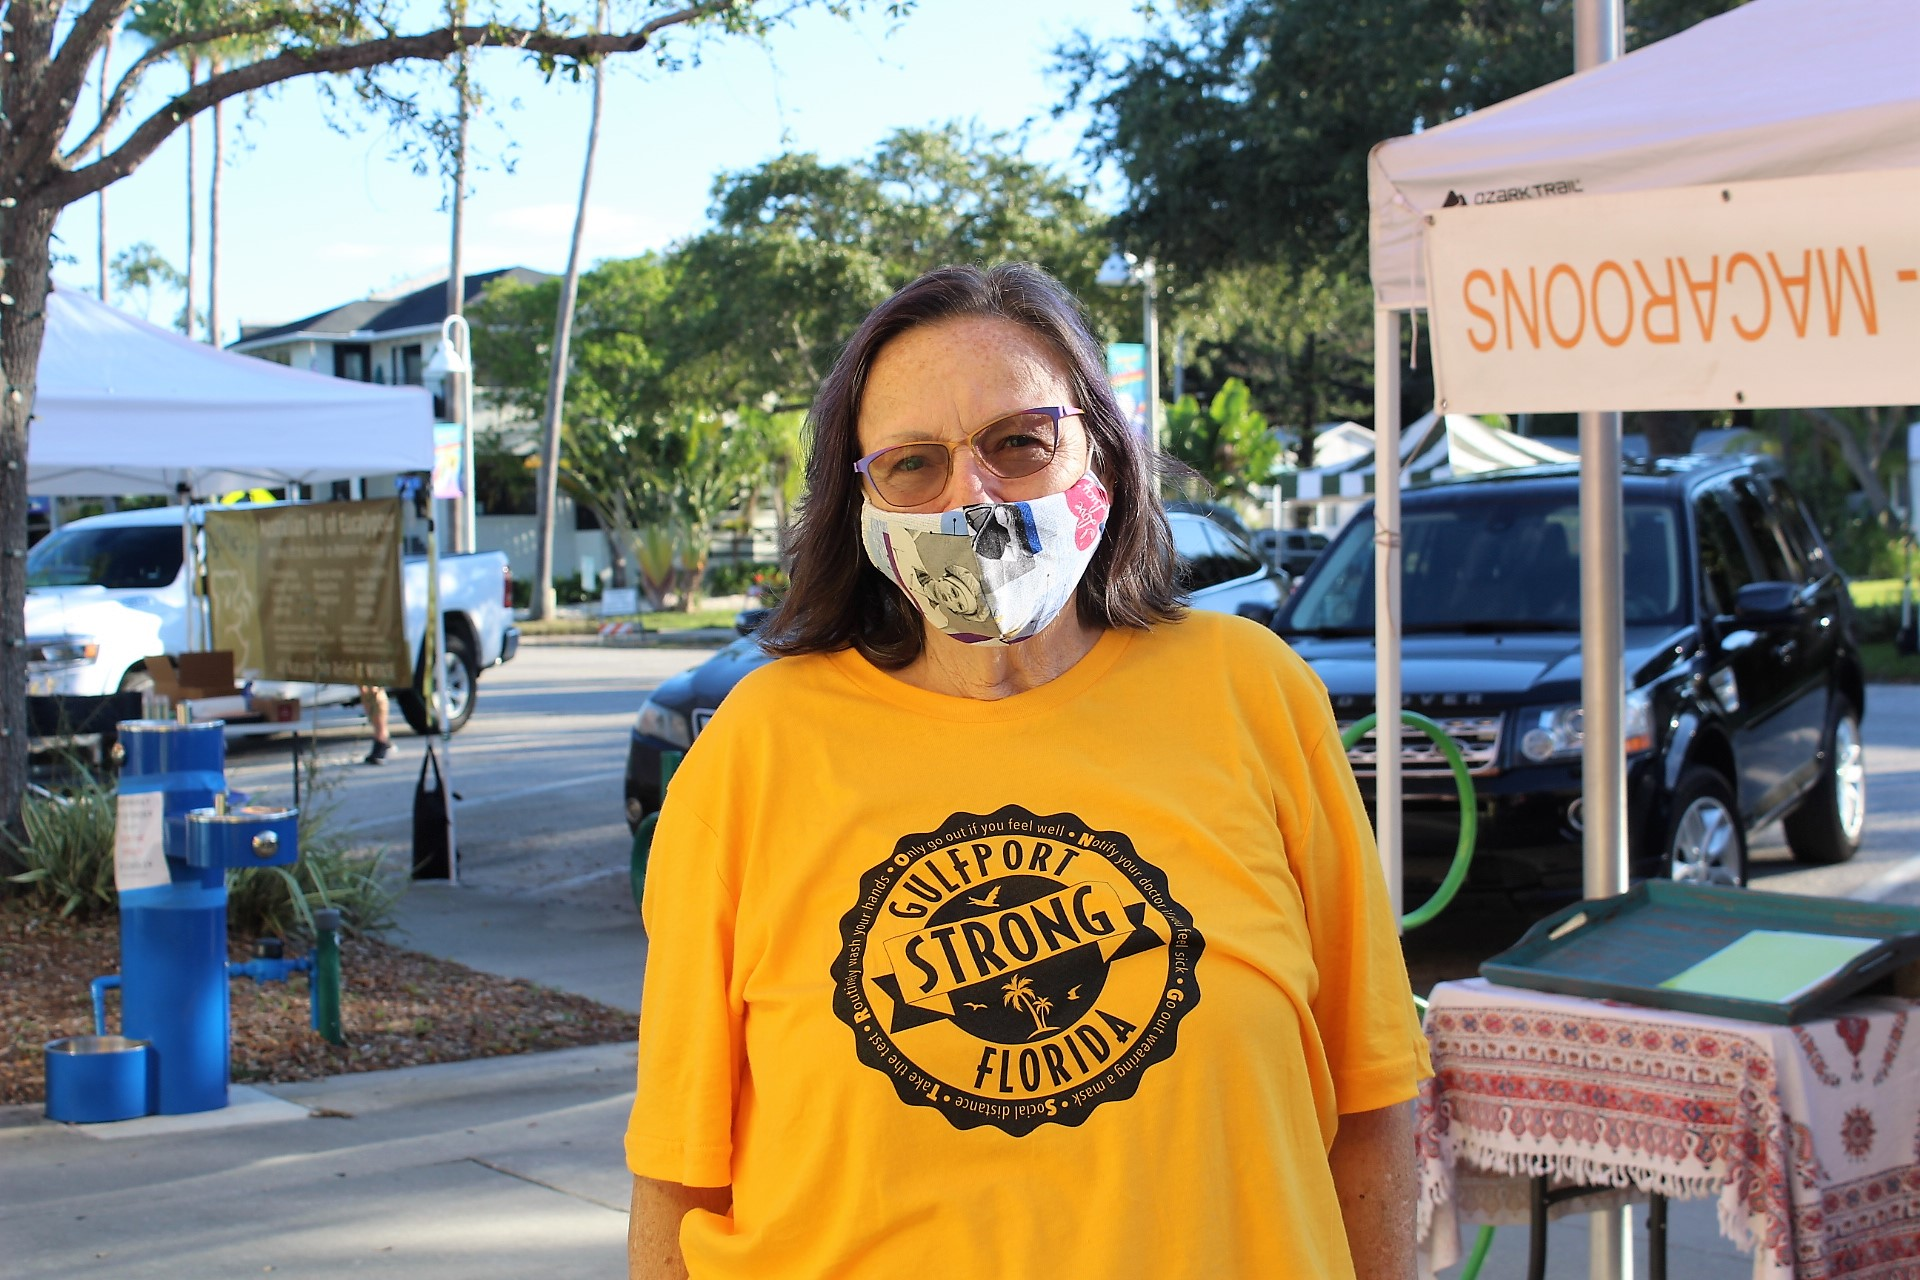 A woman in a gold t-shirt and face mask looks at the camera.